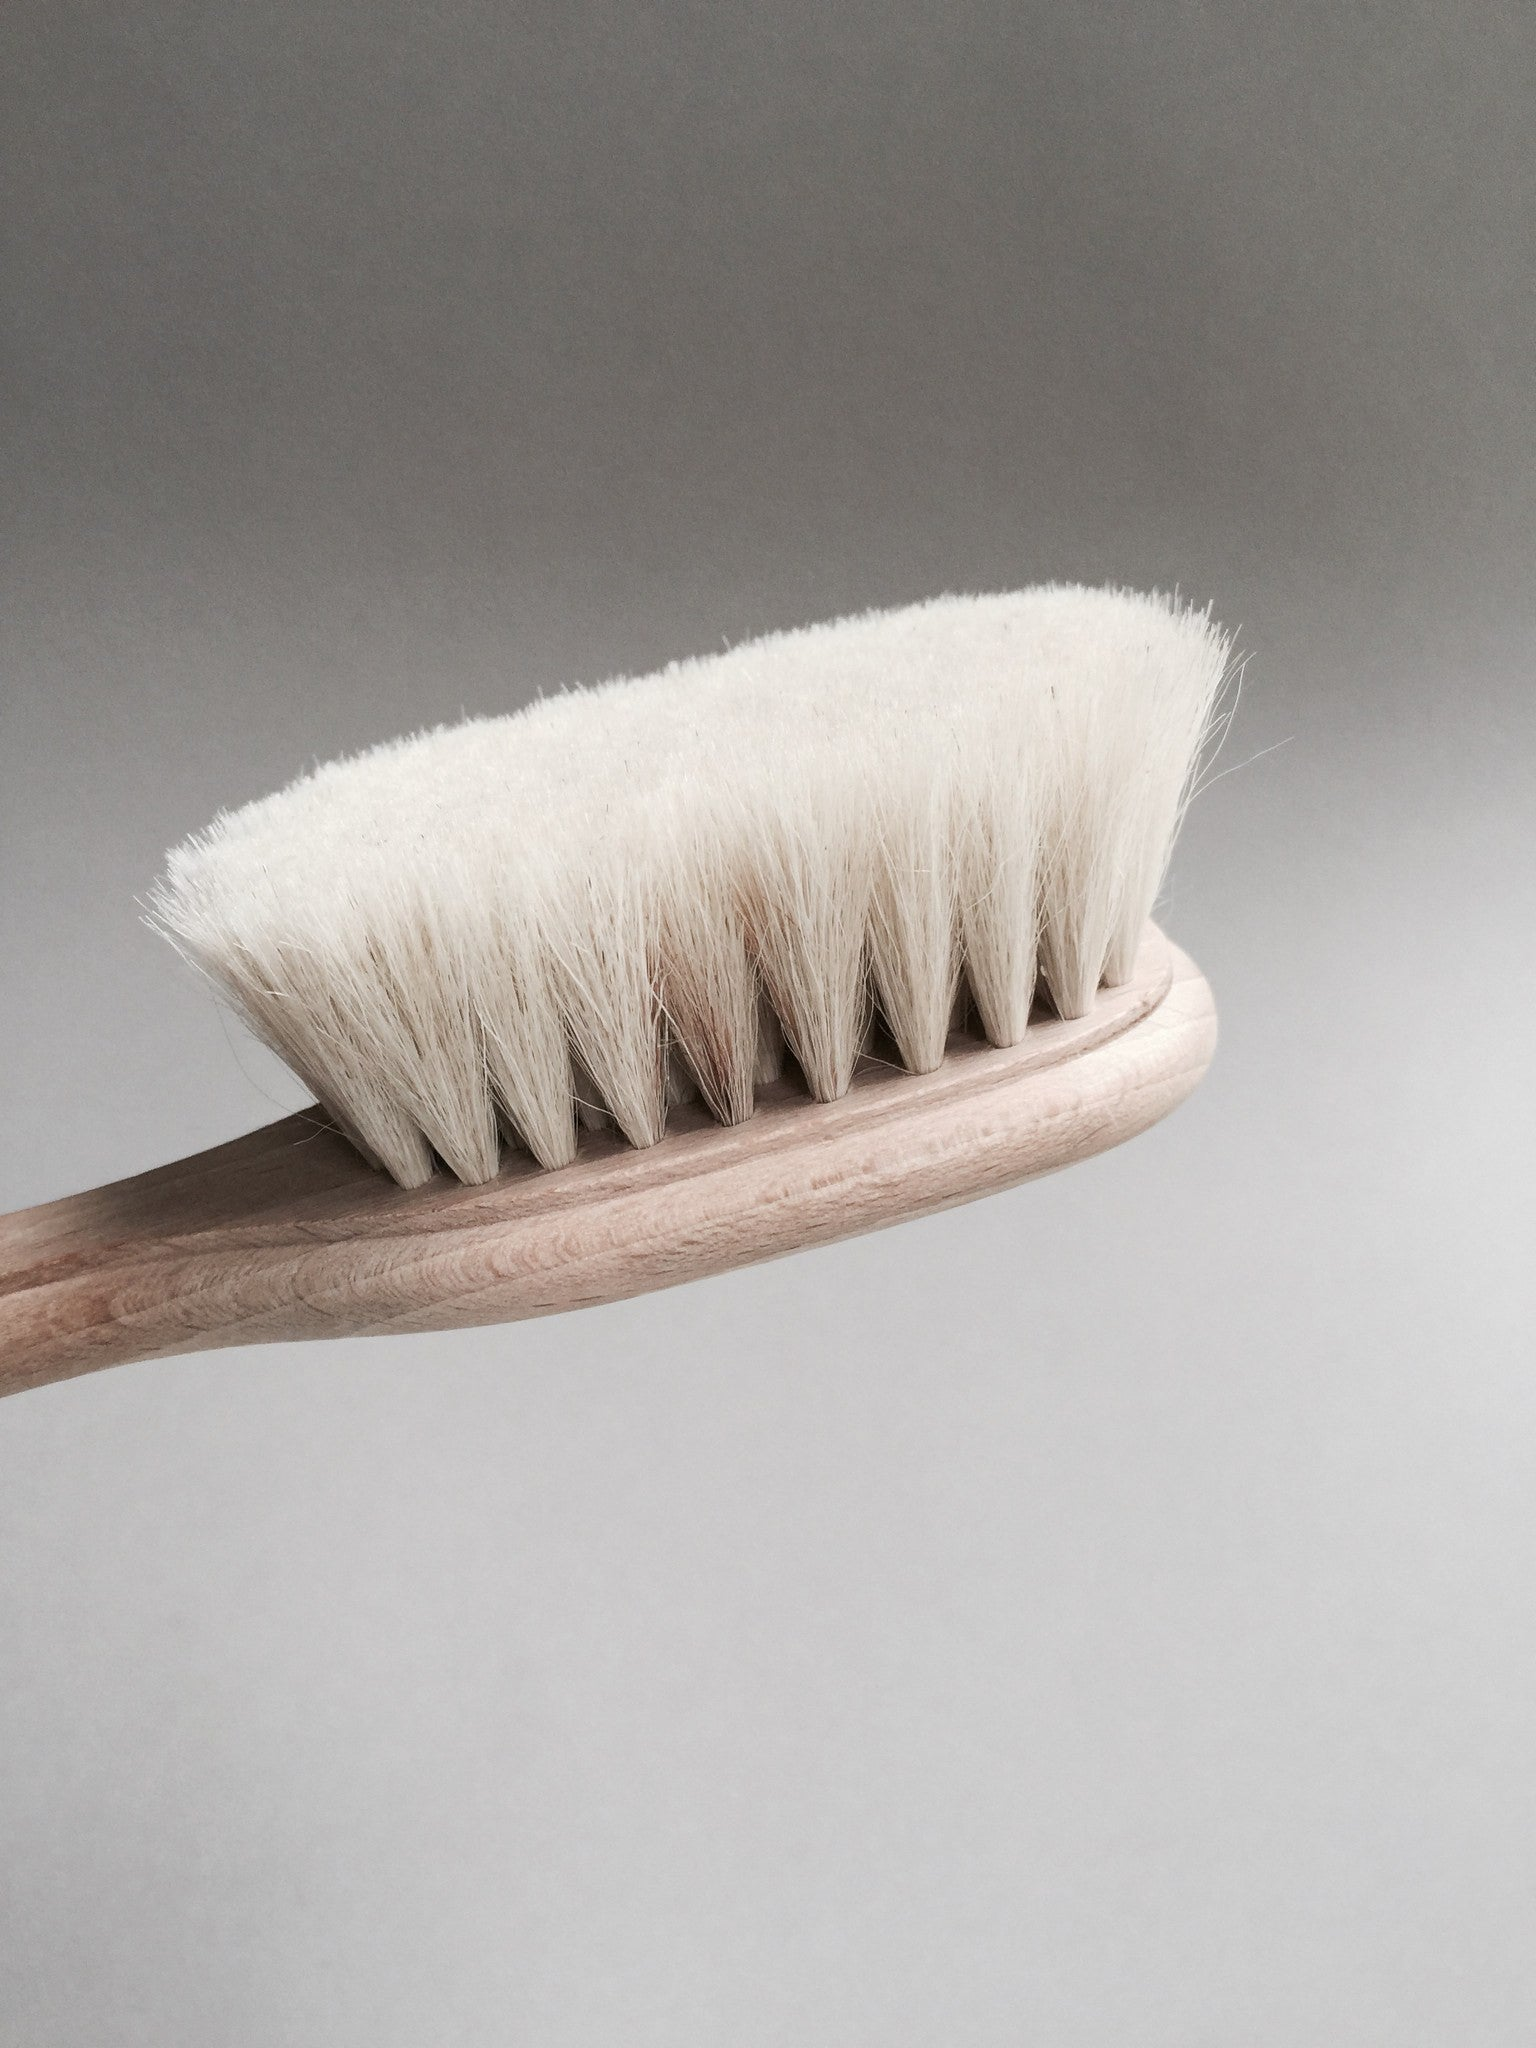 fawn&forest Heirloom Beech Wood Baby Hairbrush